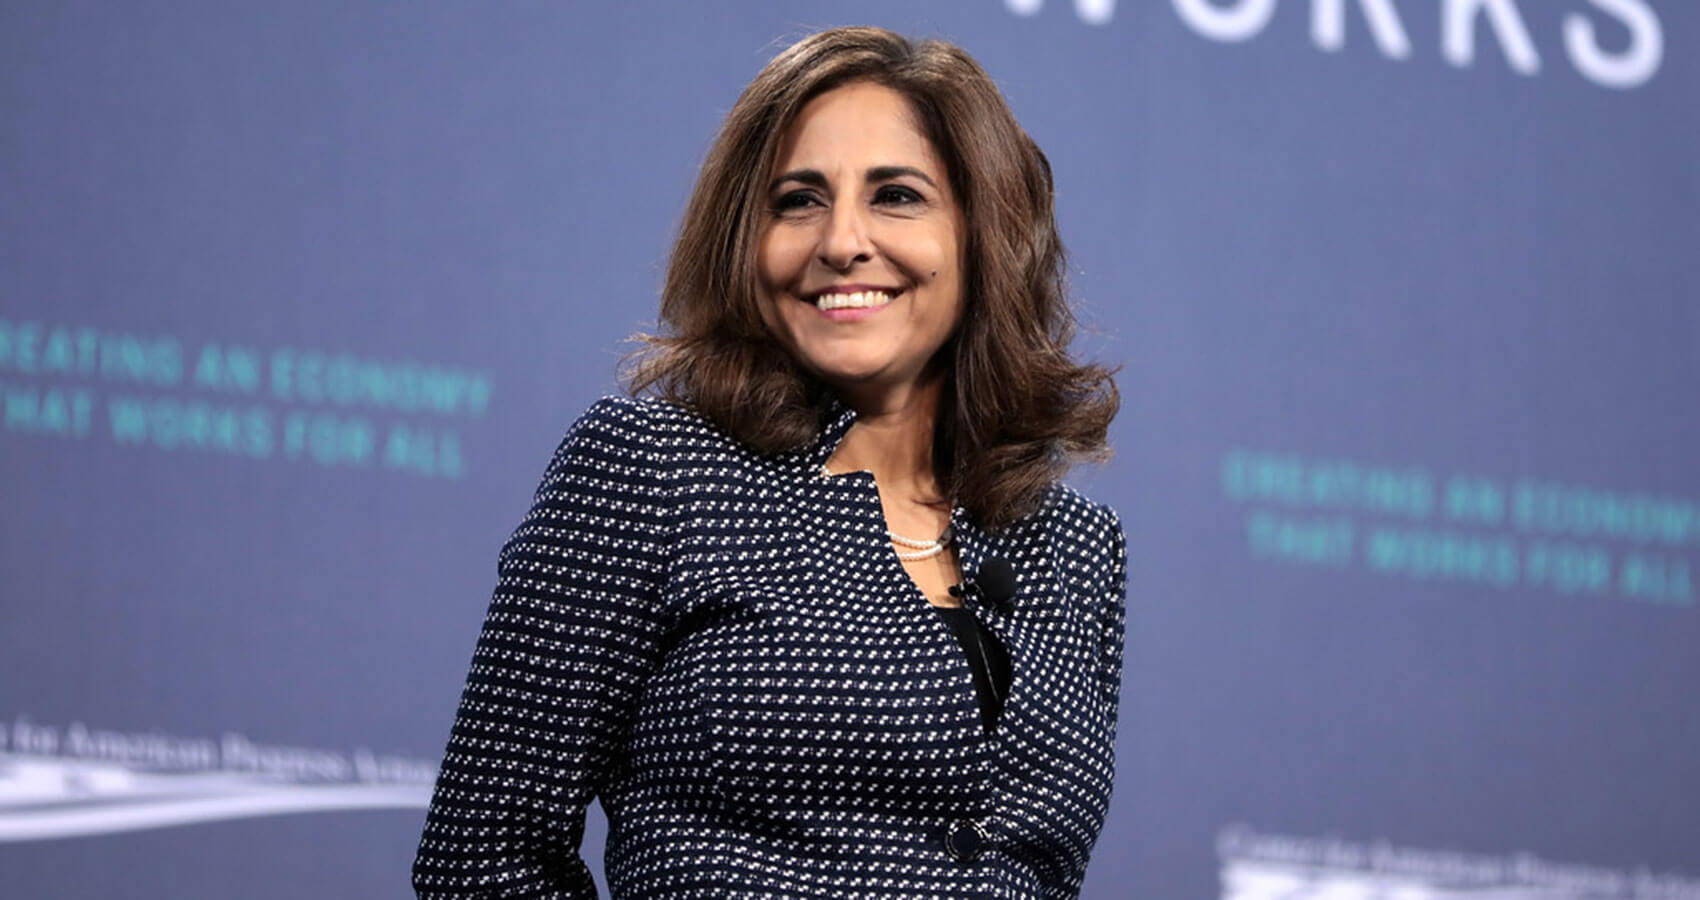 Neera Tanden To Be Nominated to Head Powerful Office of Management and Budget